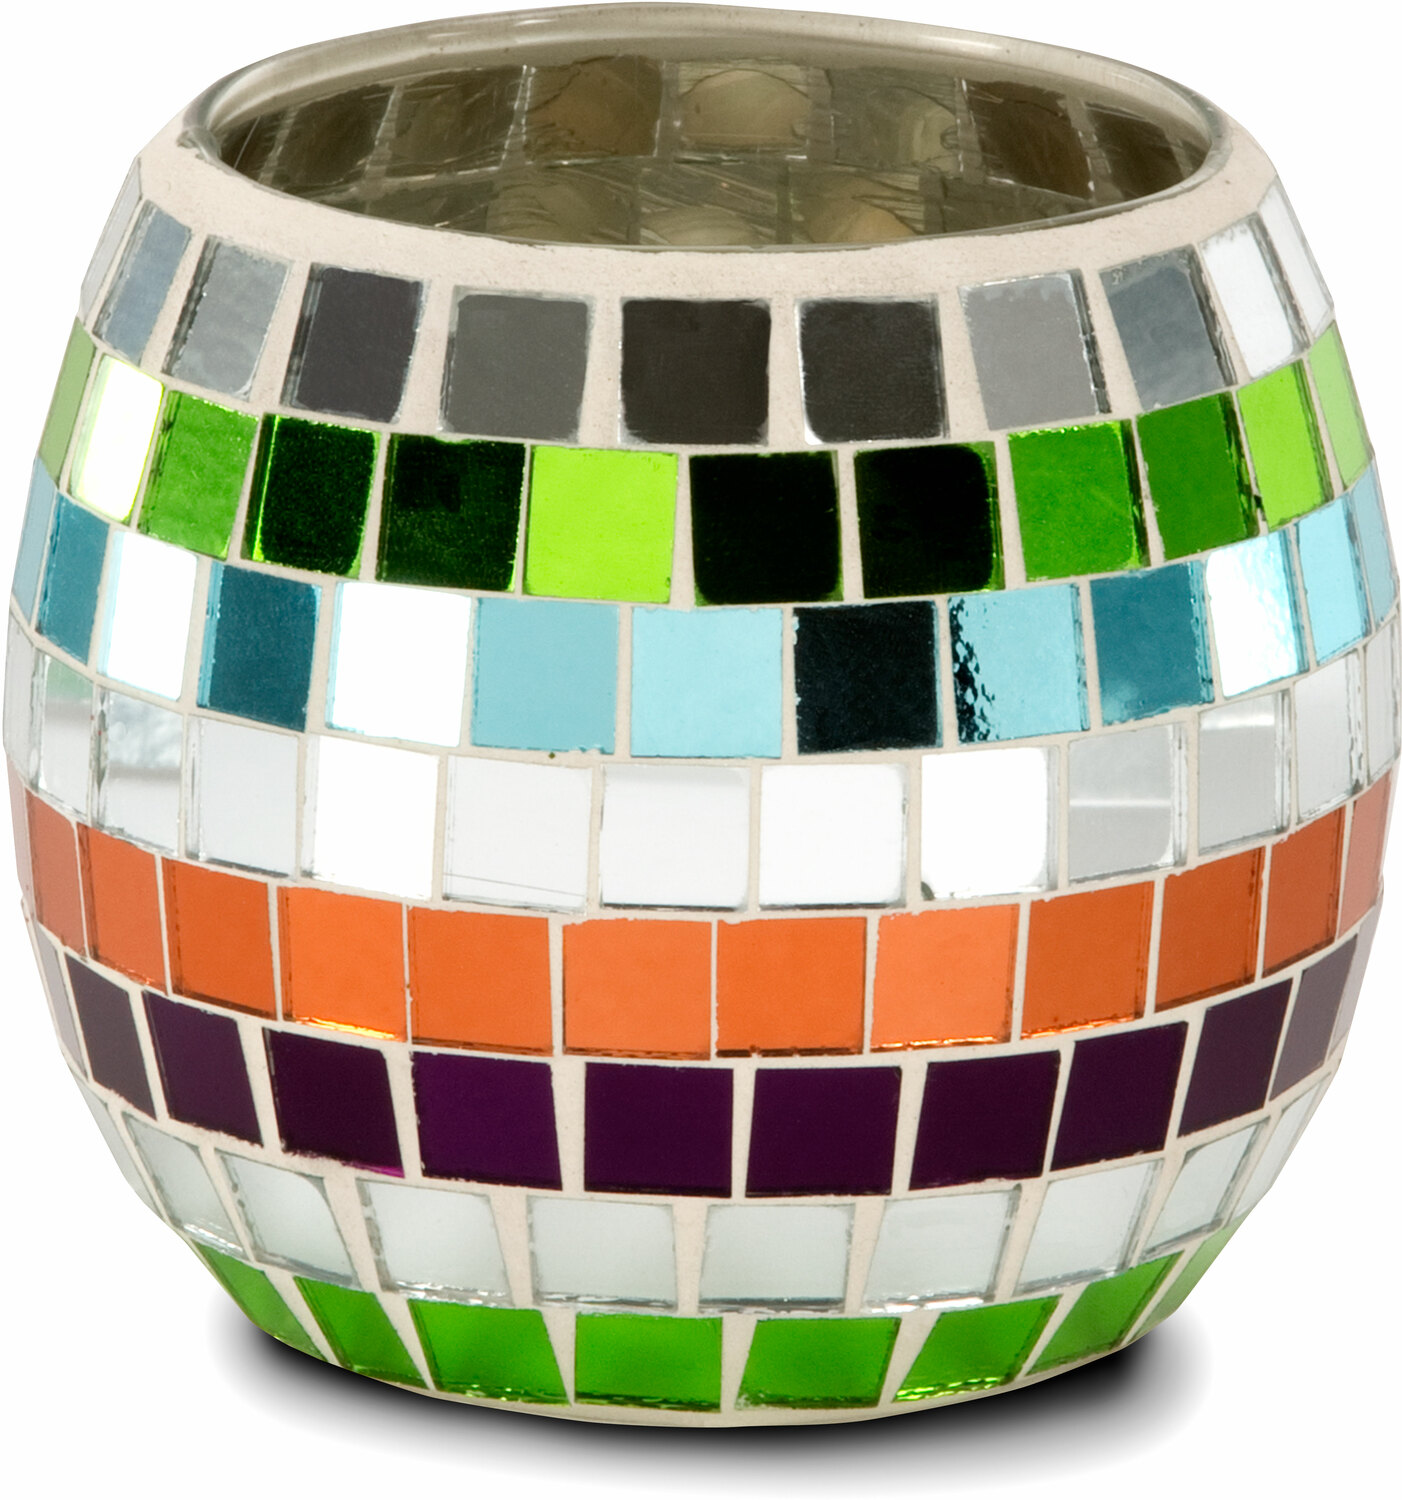 mosaic glass candle holder round 4 5 mosaic glass candle. Black Bedroom Furniture Sets. Home Design Ideas